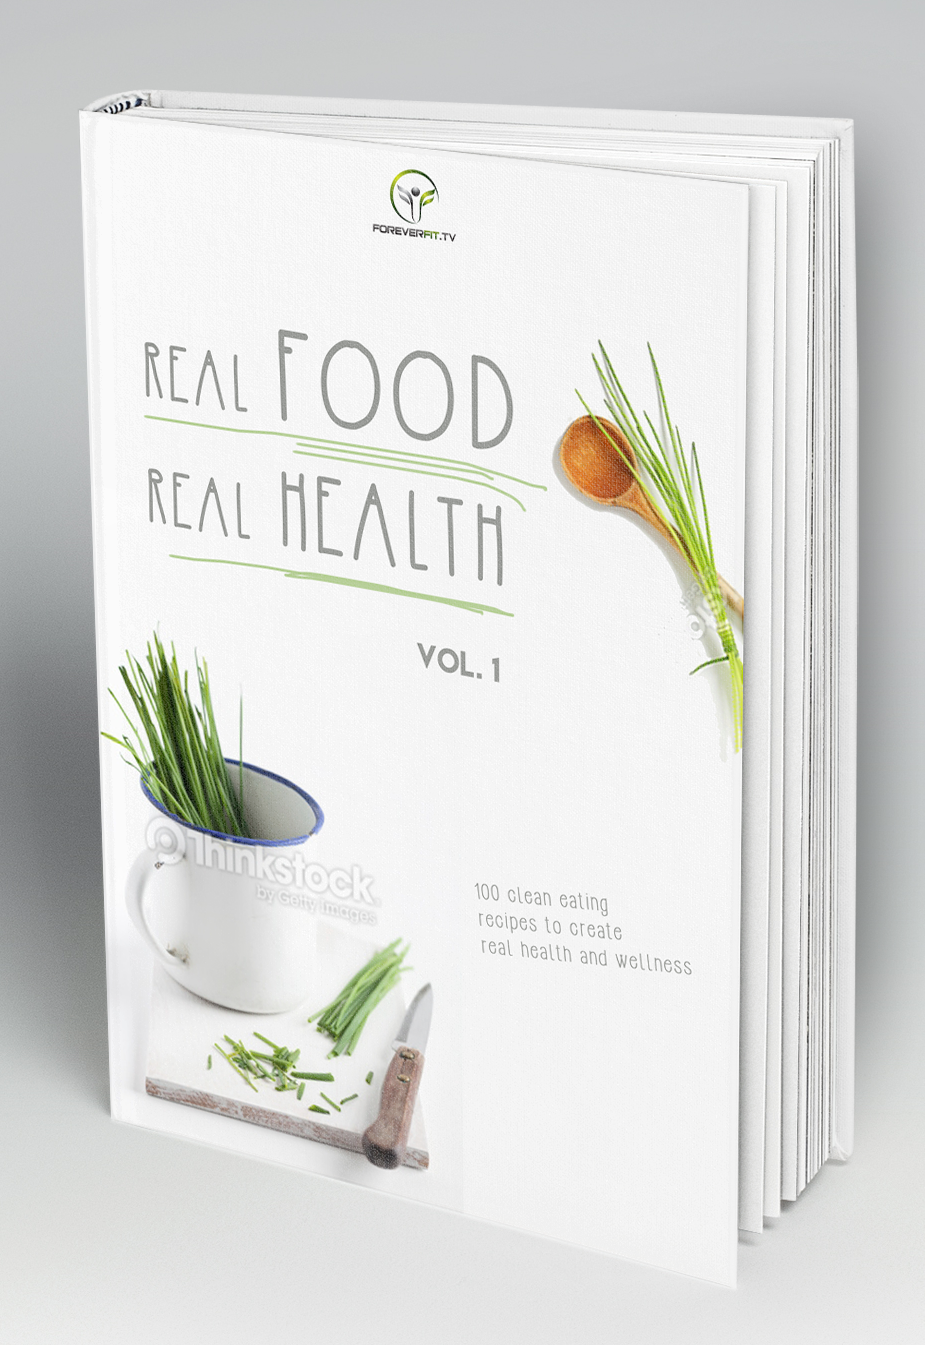 Health Book Cover Design ~ Deliciously designed cookbook covers designs